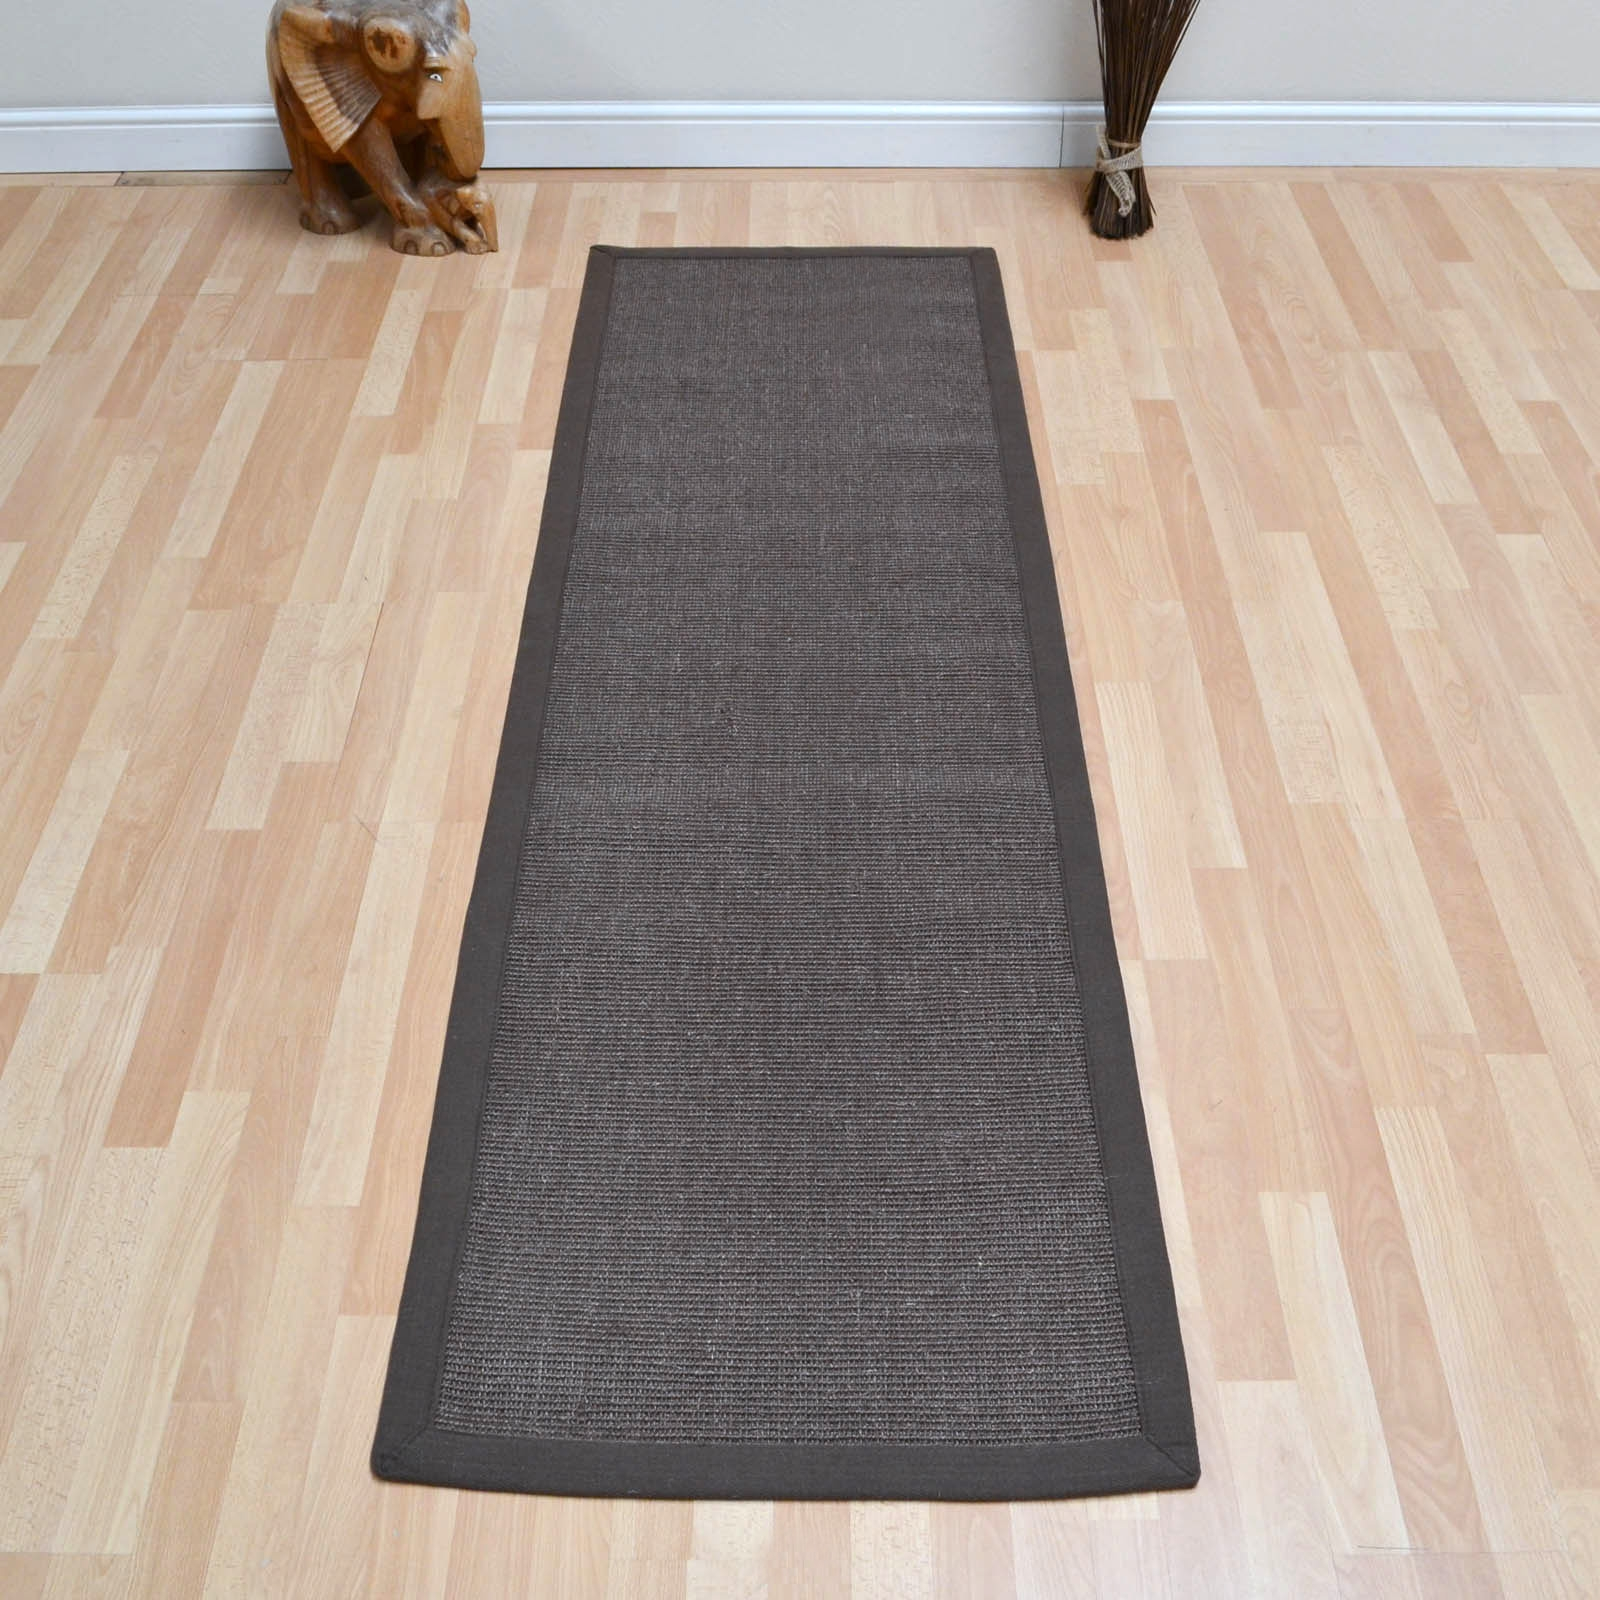 Sisal Hallway Runners In Linen Free Uk Delivery The Rug Seller Intended For Hallway Runners Black And Grey (#20 of 20)